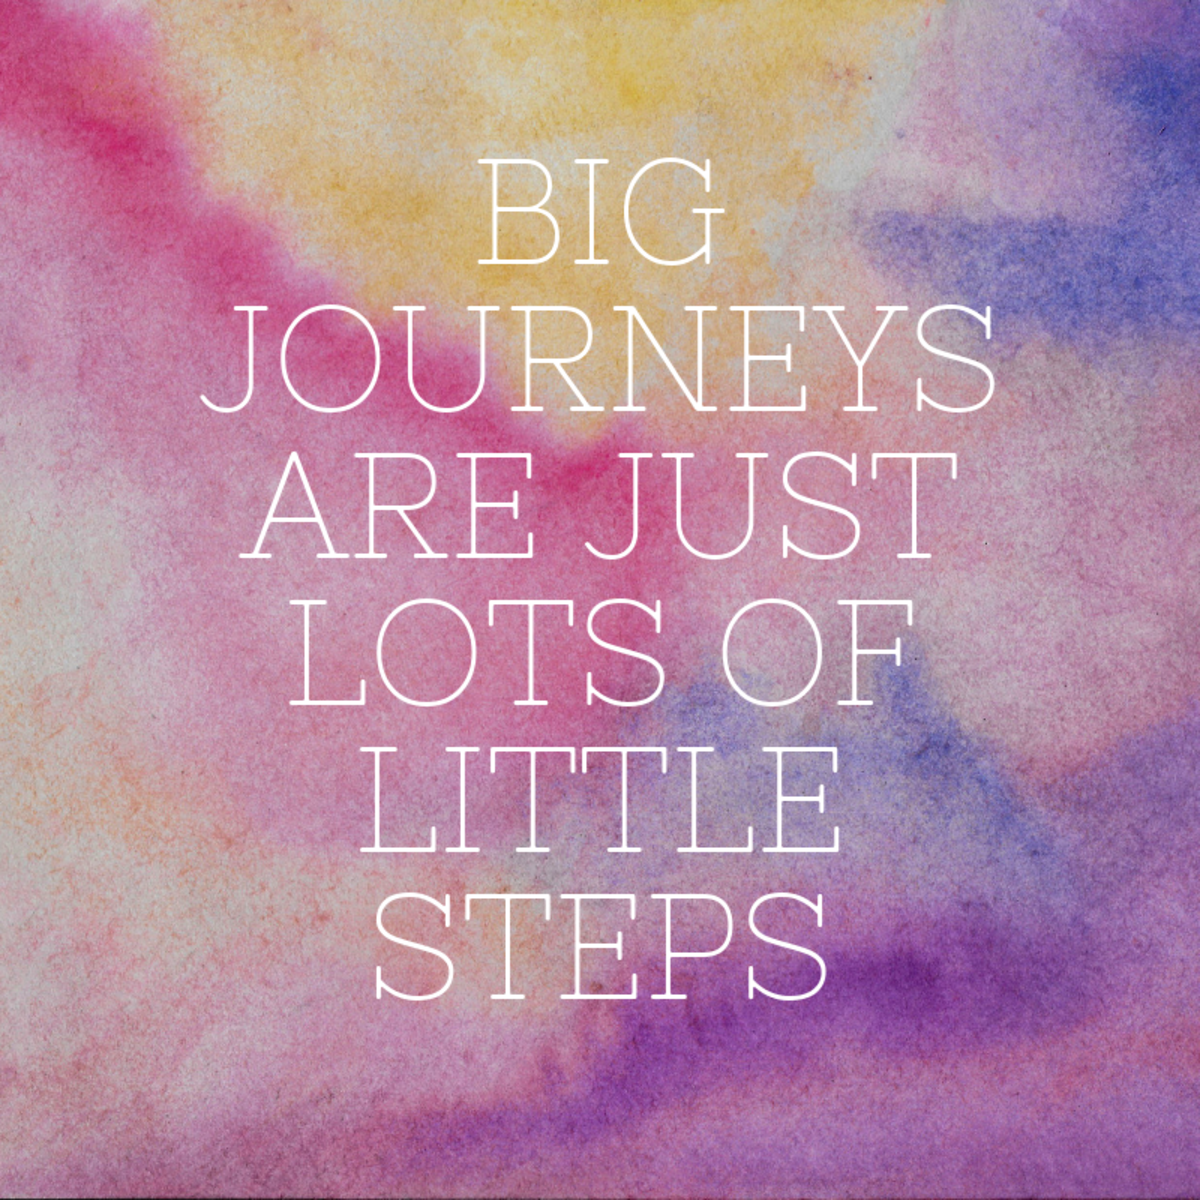 Big Journey Little Steps